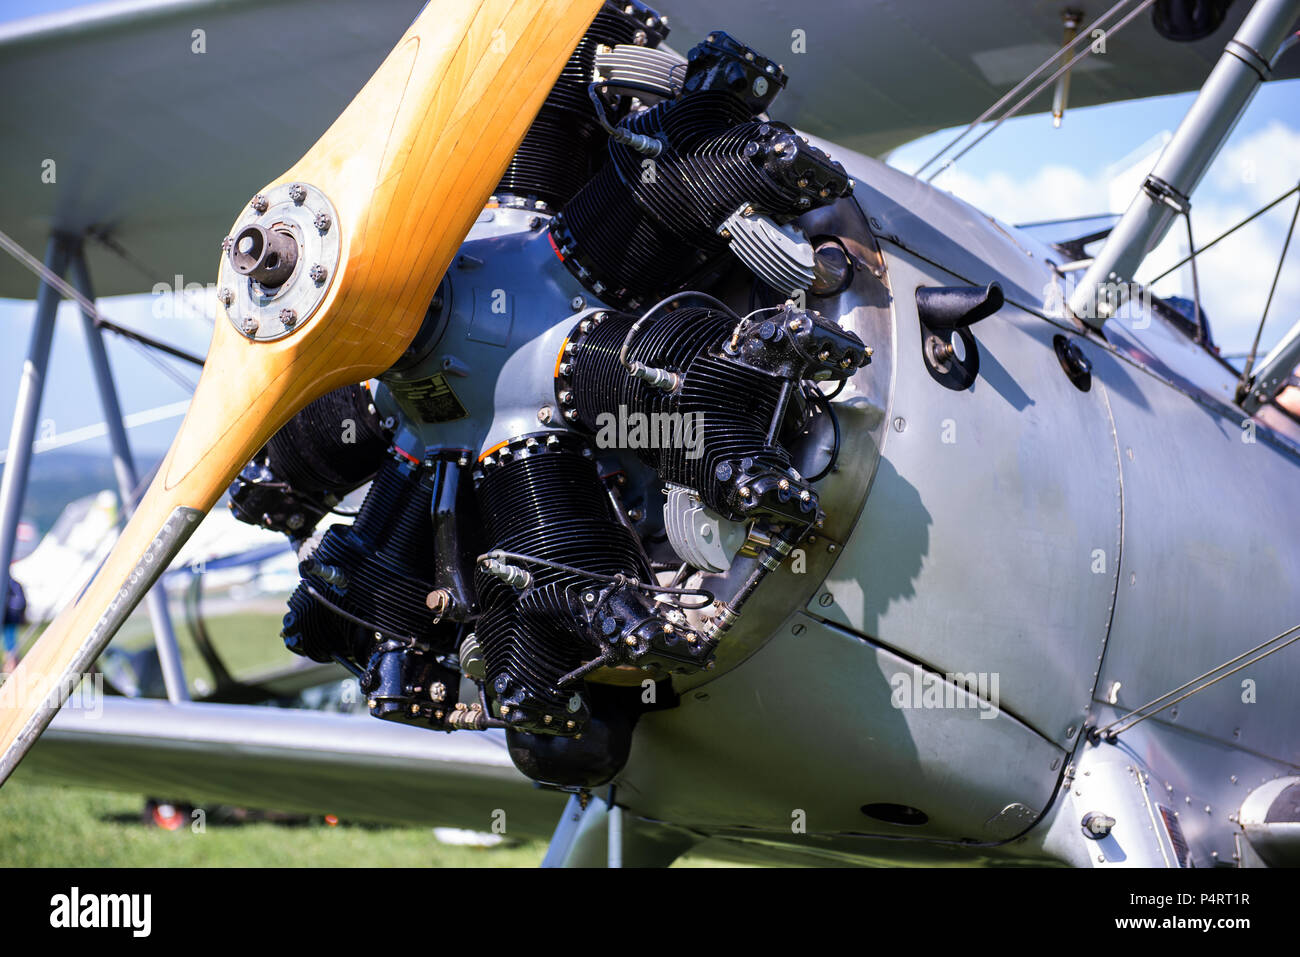 Vintage aircraft with radial engine and wooden propeller, close up of nose section - Stock Image